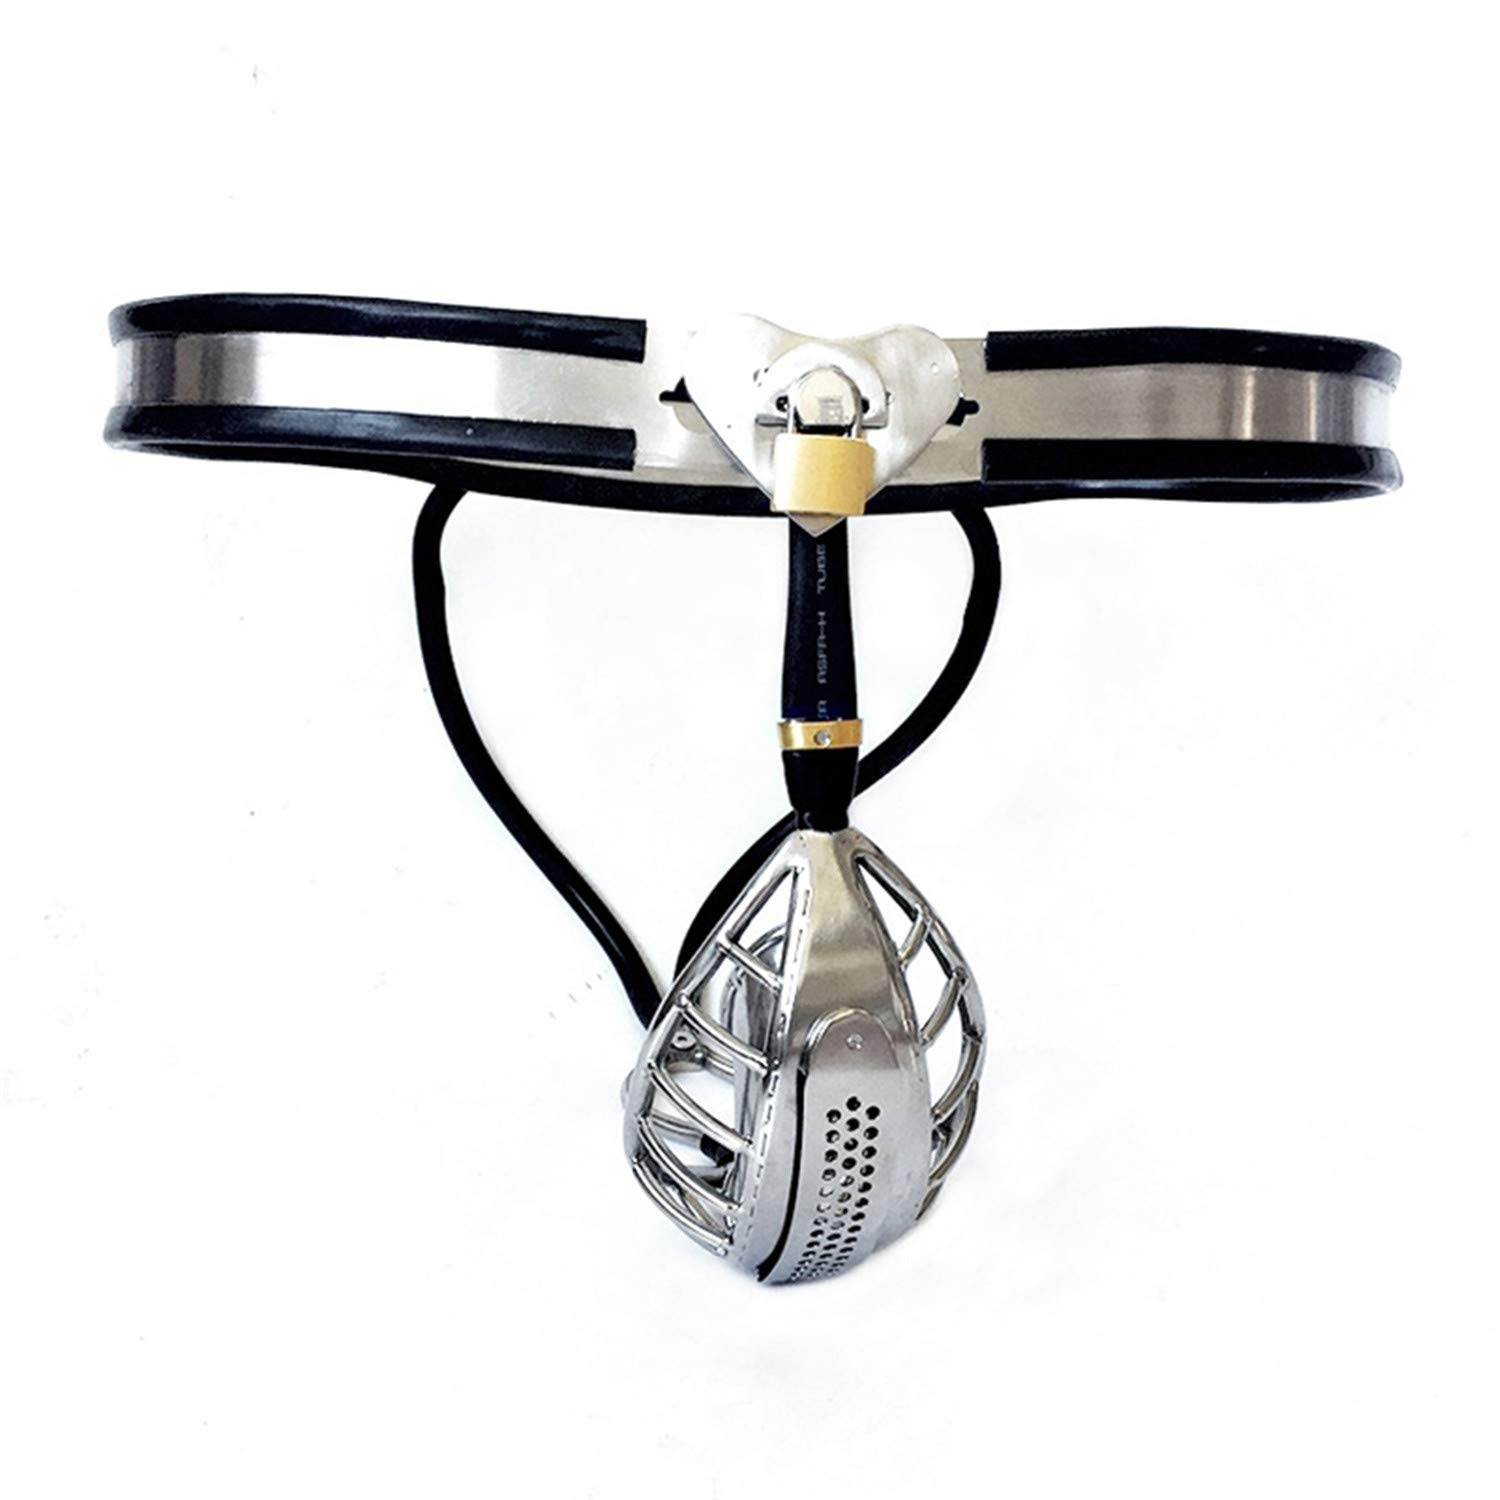 Catheter Sound Male Chastity Chastity Cages Wanyesta Belt Stainless Steel Lock Adult Game CǑck Cage Restraint Device Sěx-Toys For Men by Wanyesta (Image #3)